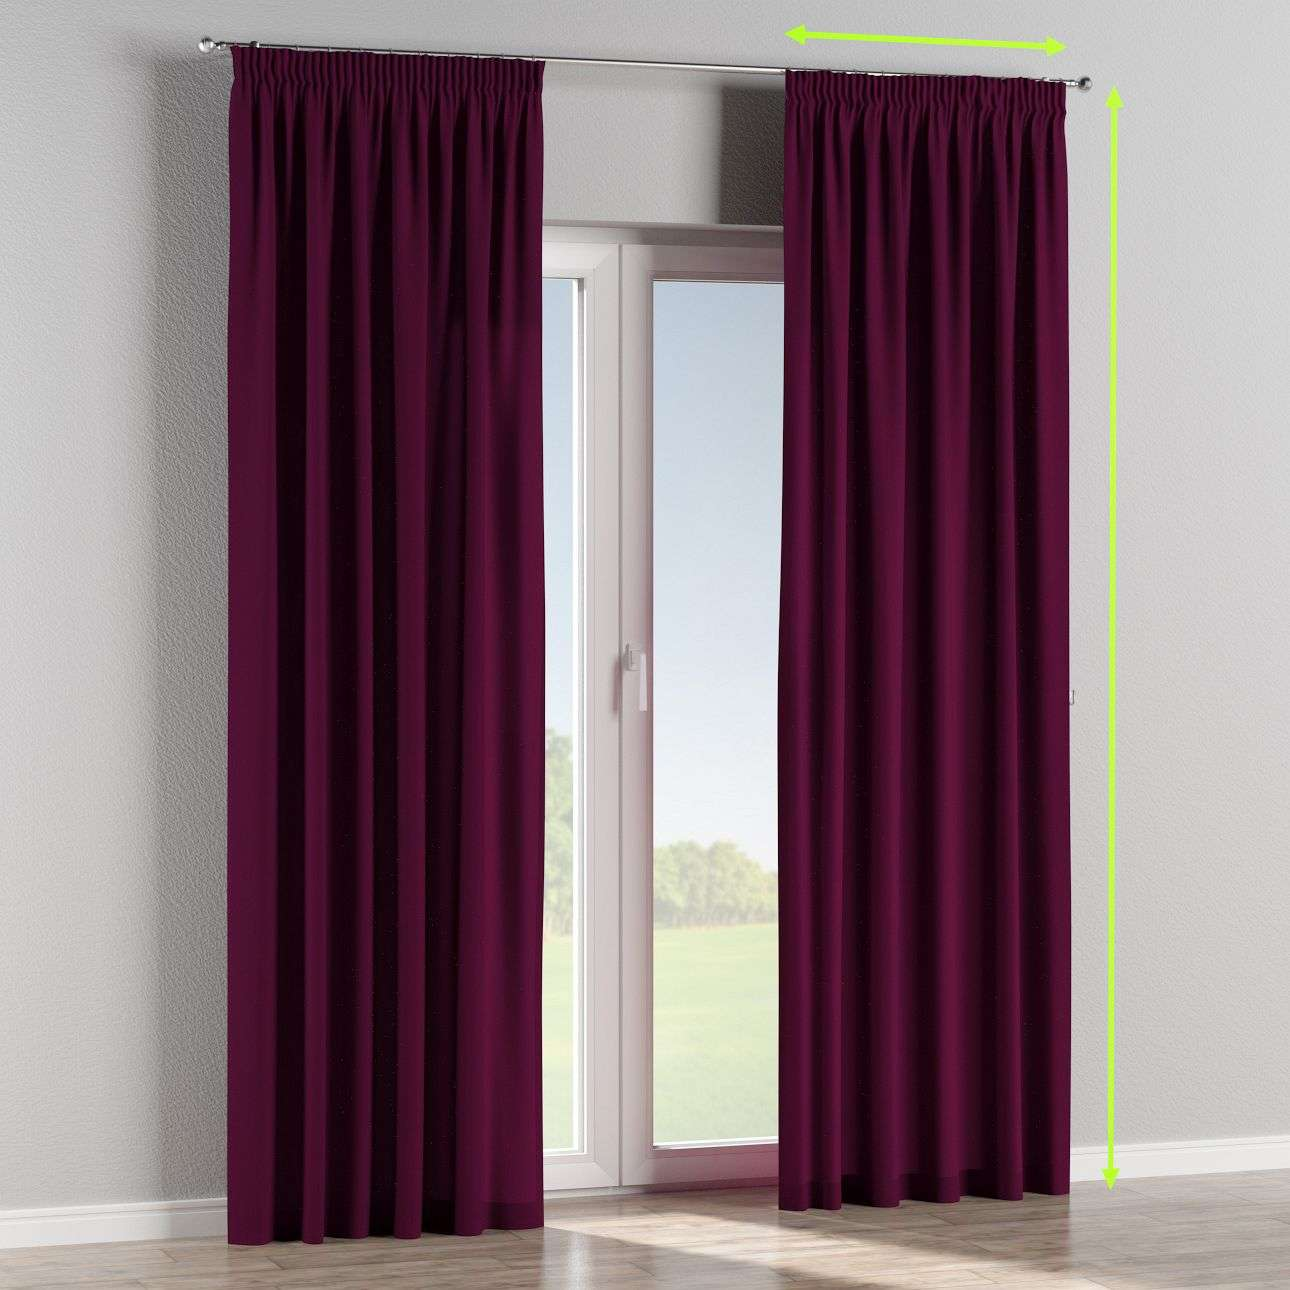 Pencil pleat curtains in collection Chenille, fabric: 702-12